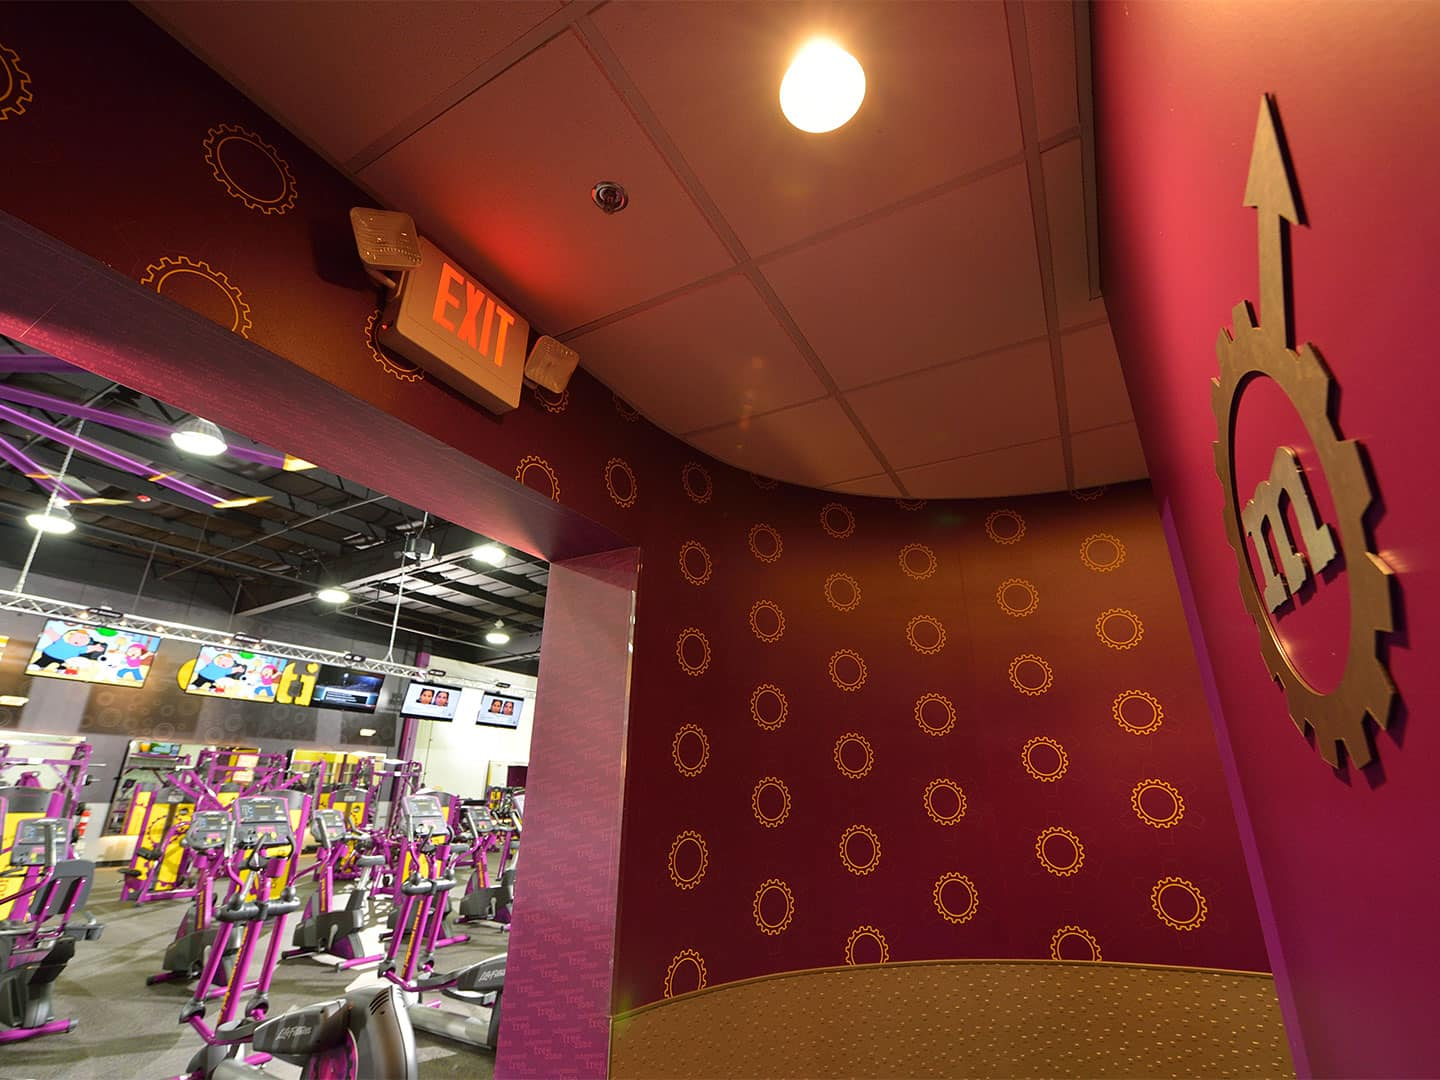 Planet Fitness - Interior Signage and Wall Covering